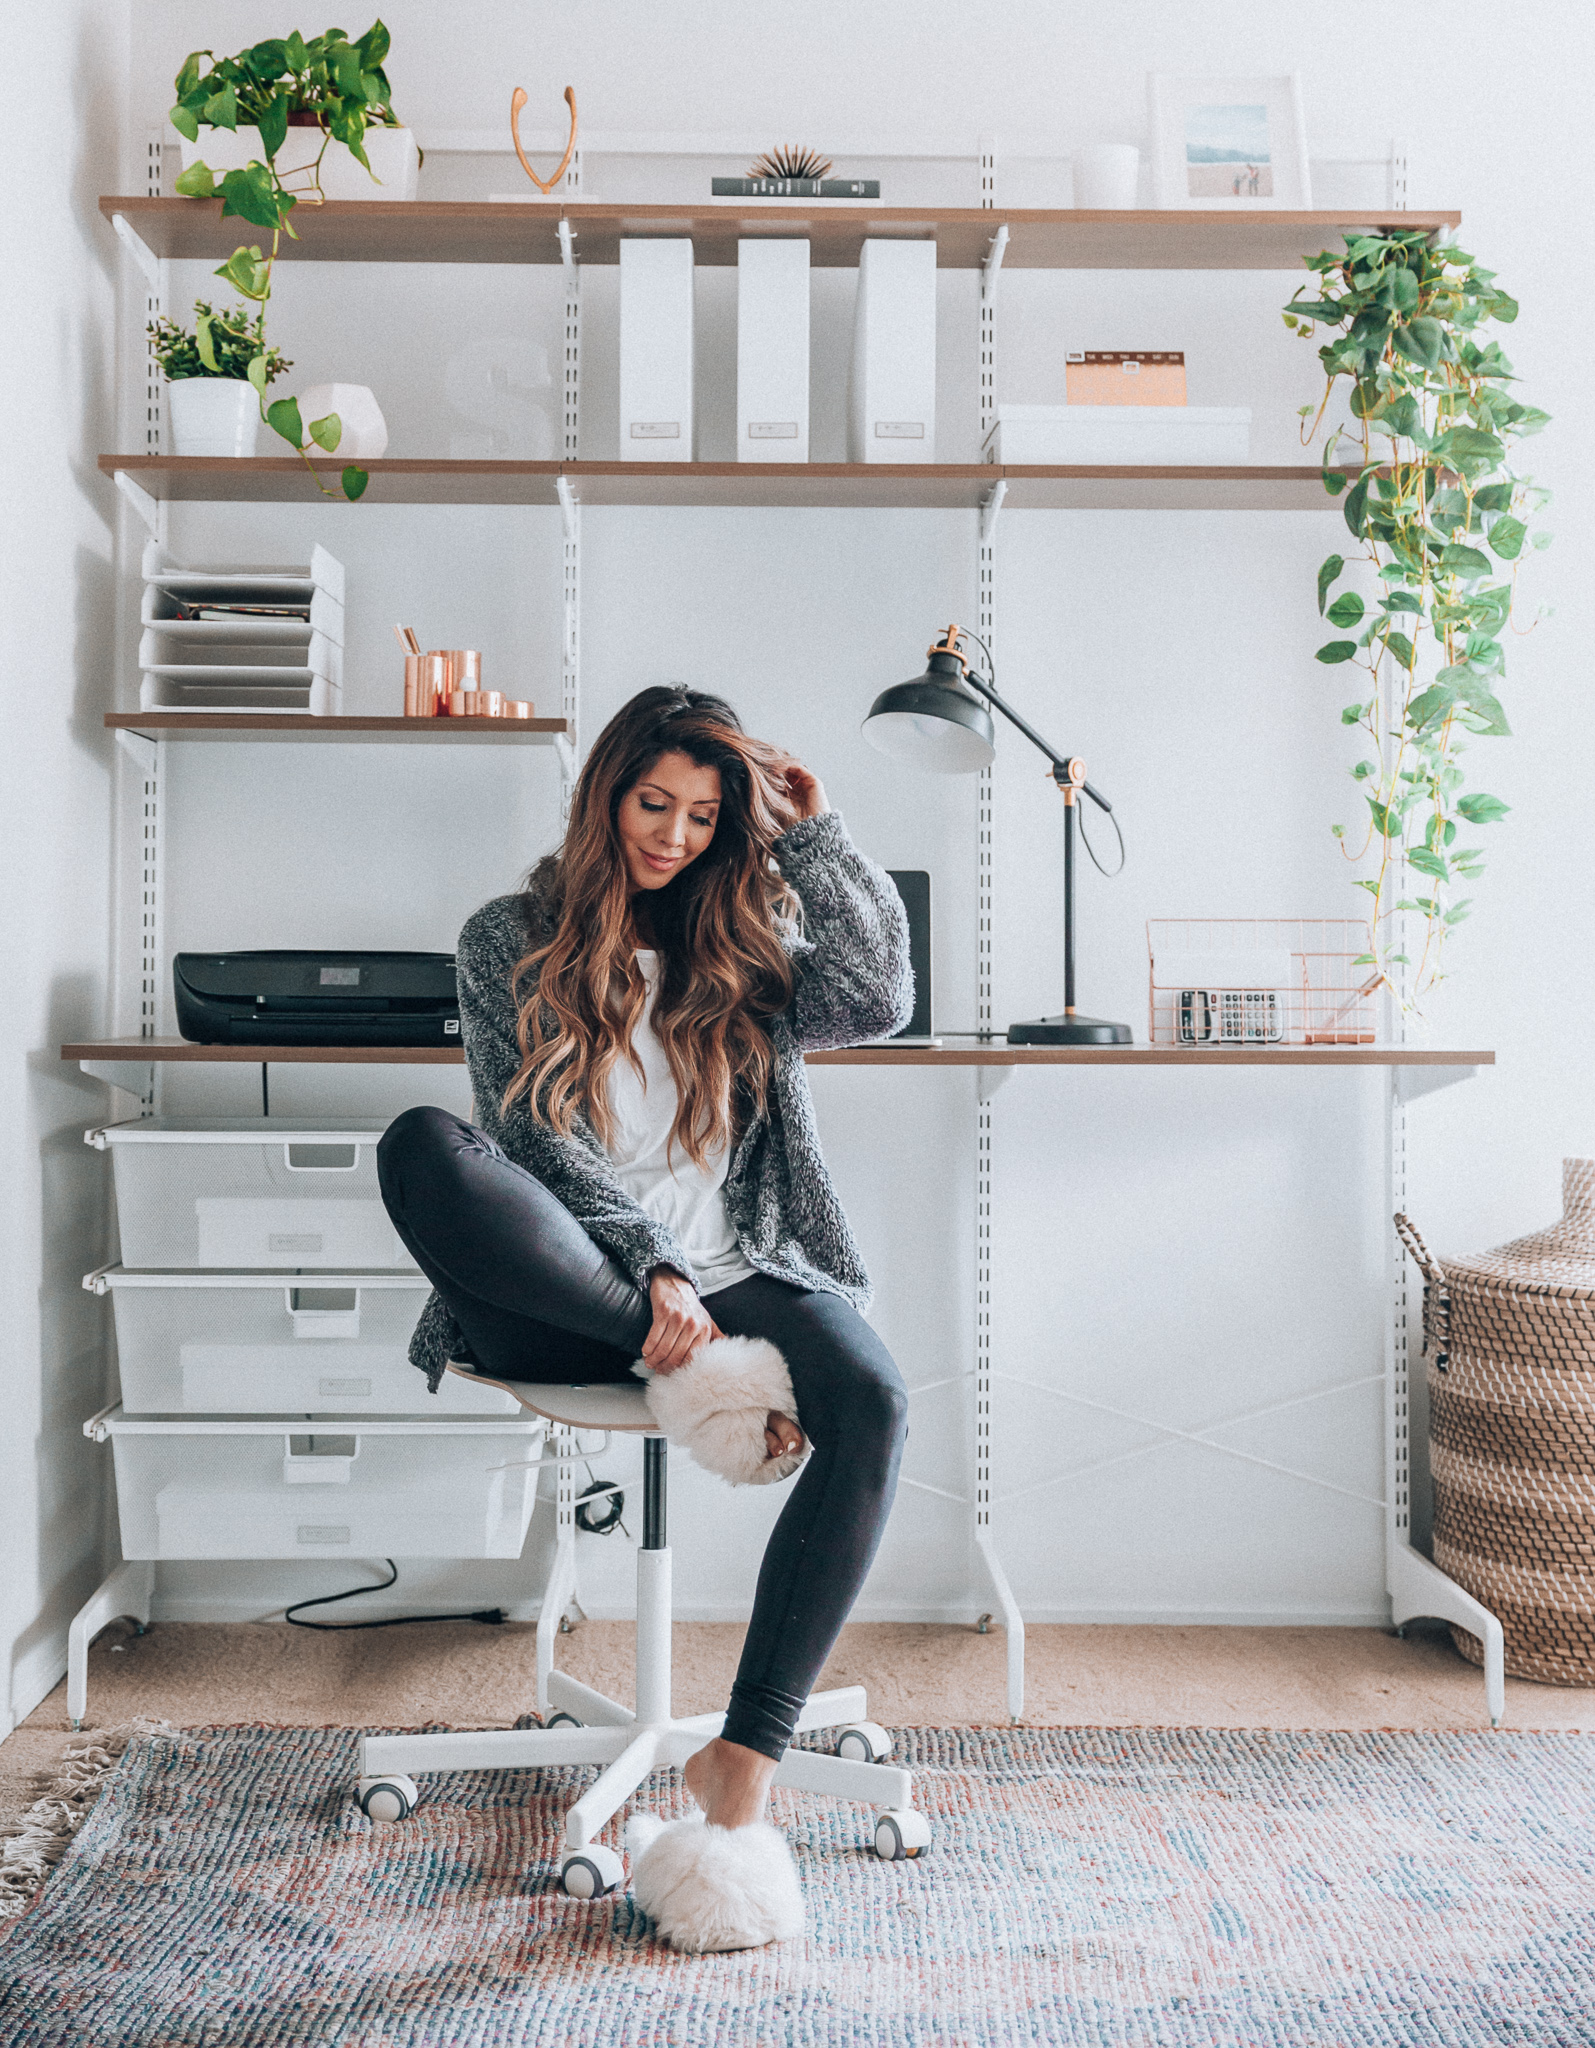 Modern Minimalist Home Office Space Ideas The Girl In The Yellow Dress